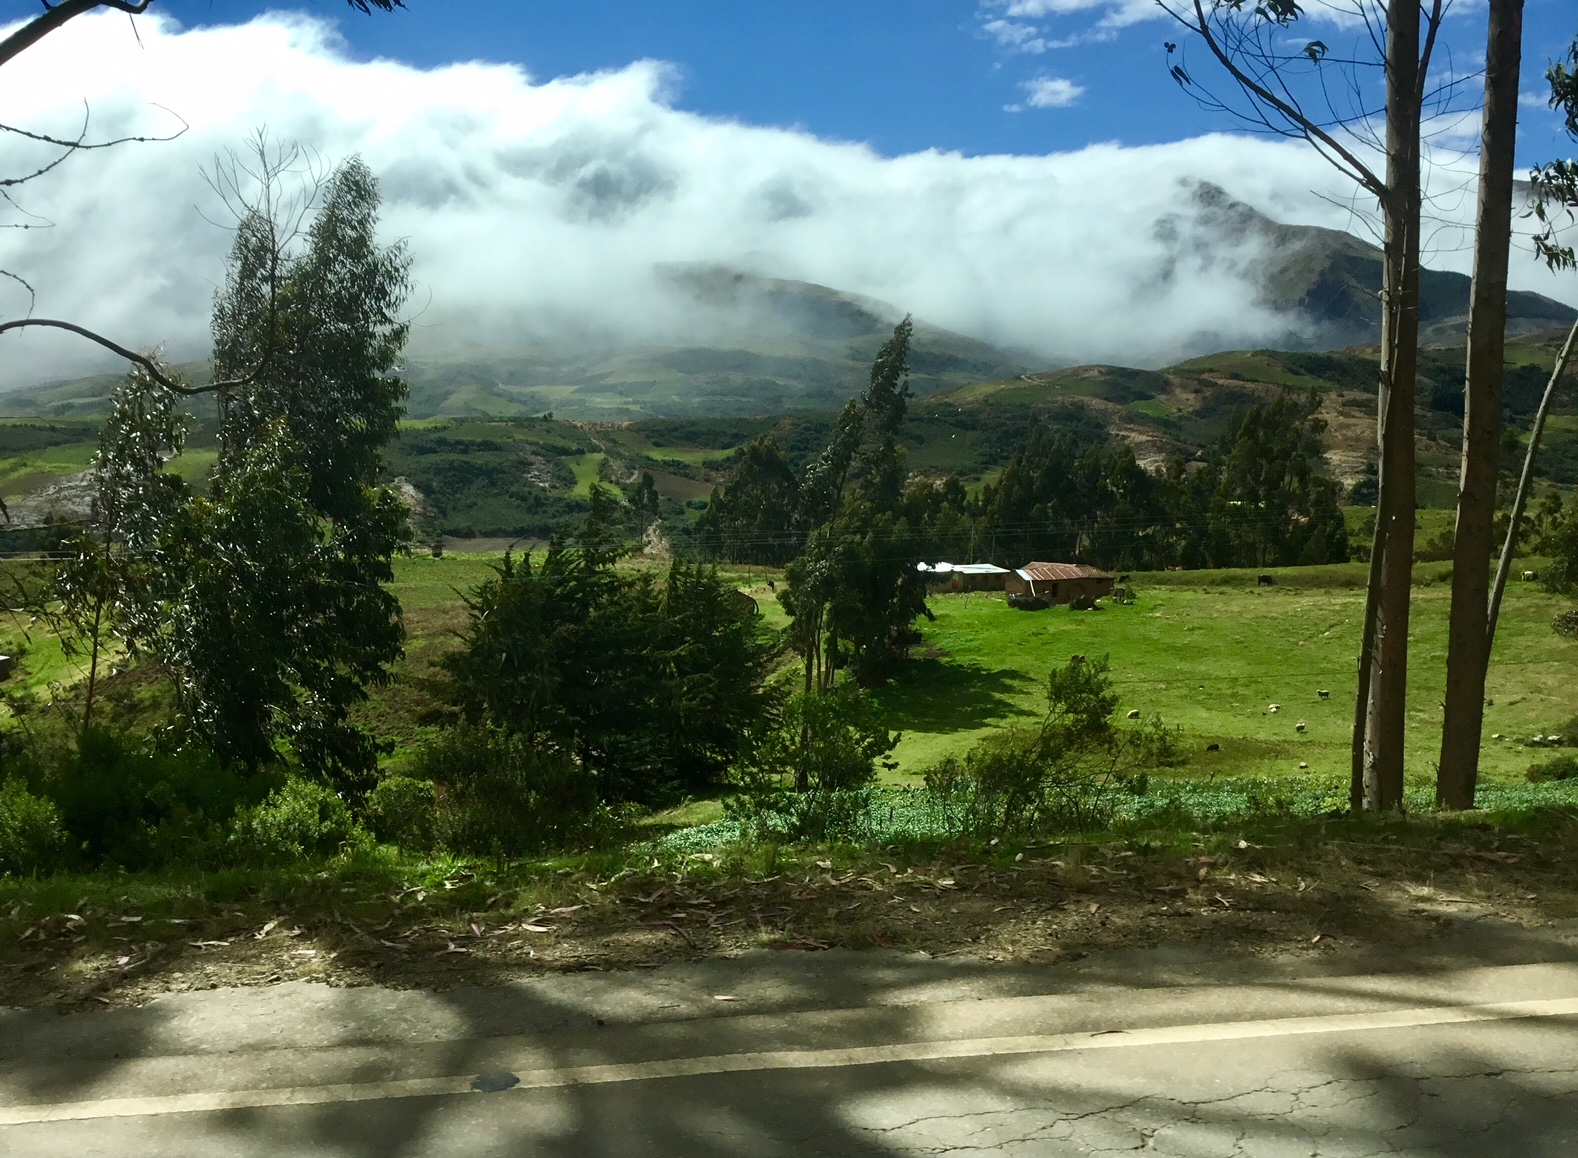 On the road in Bolivia